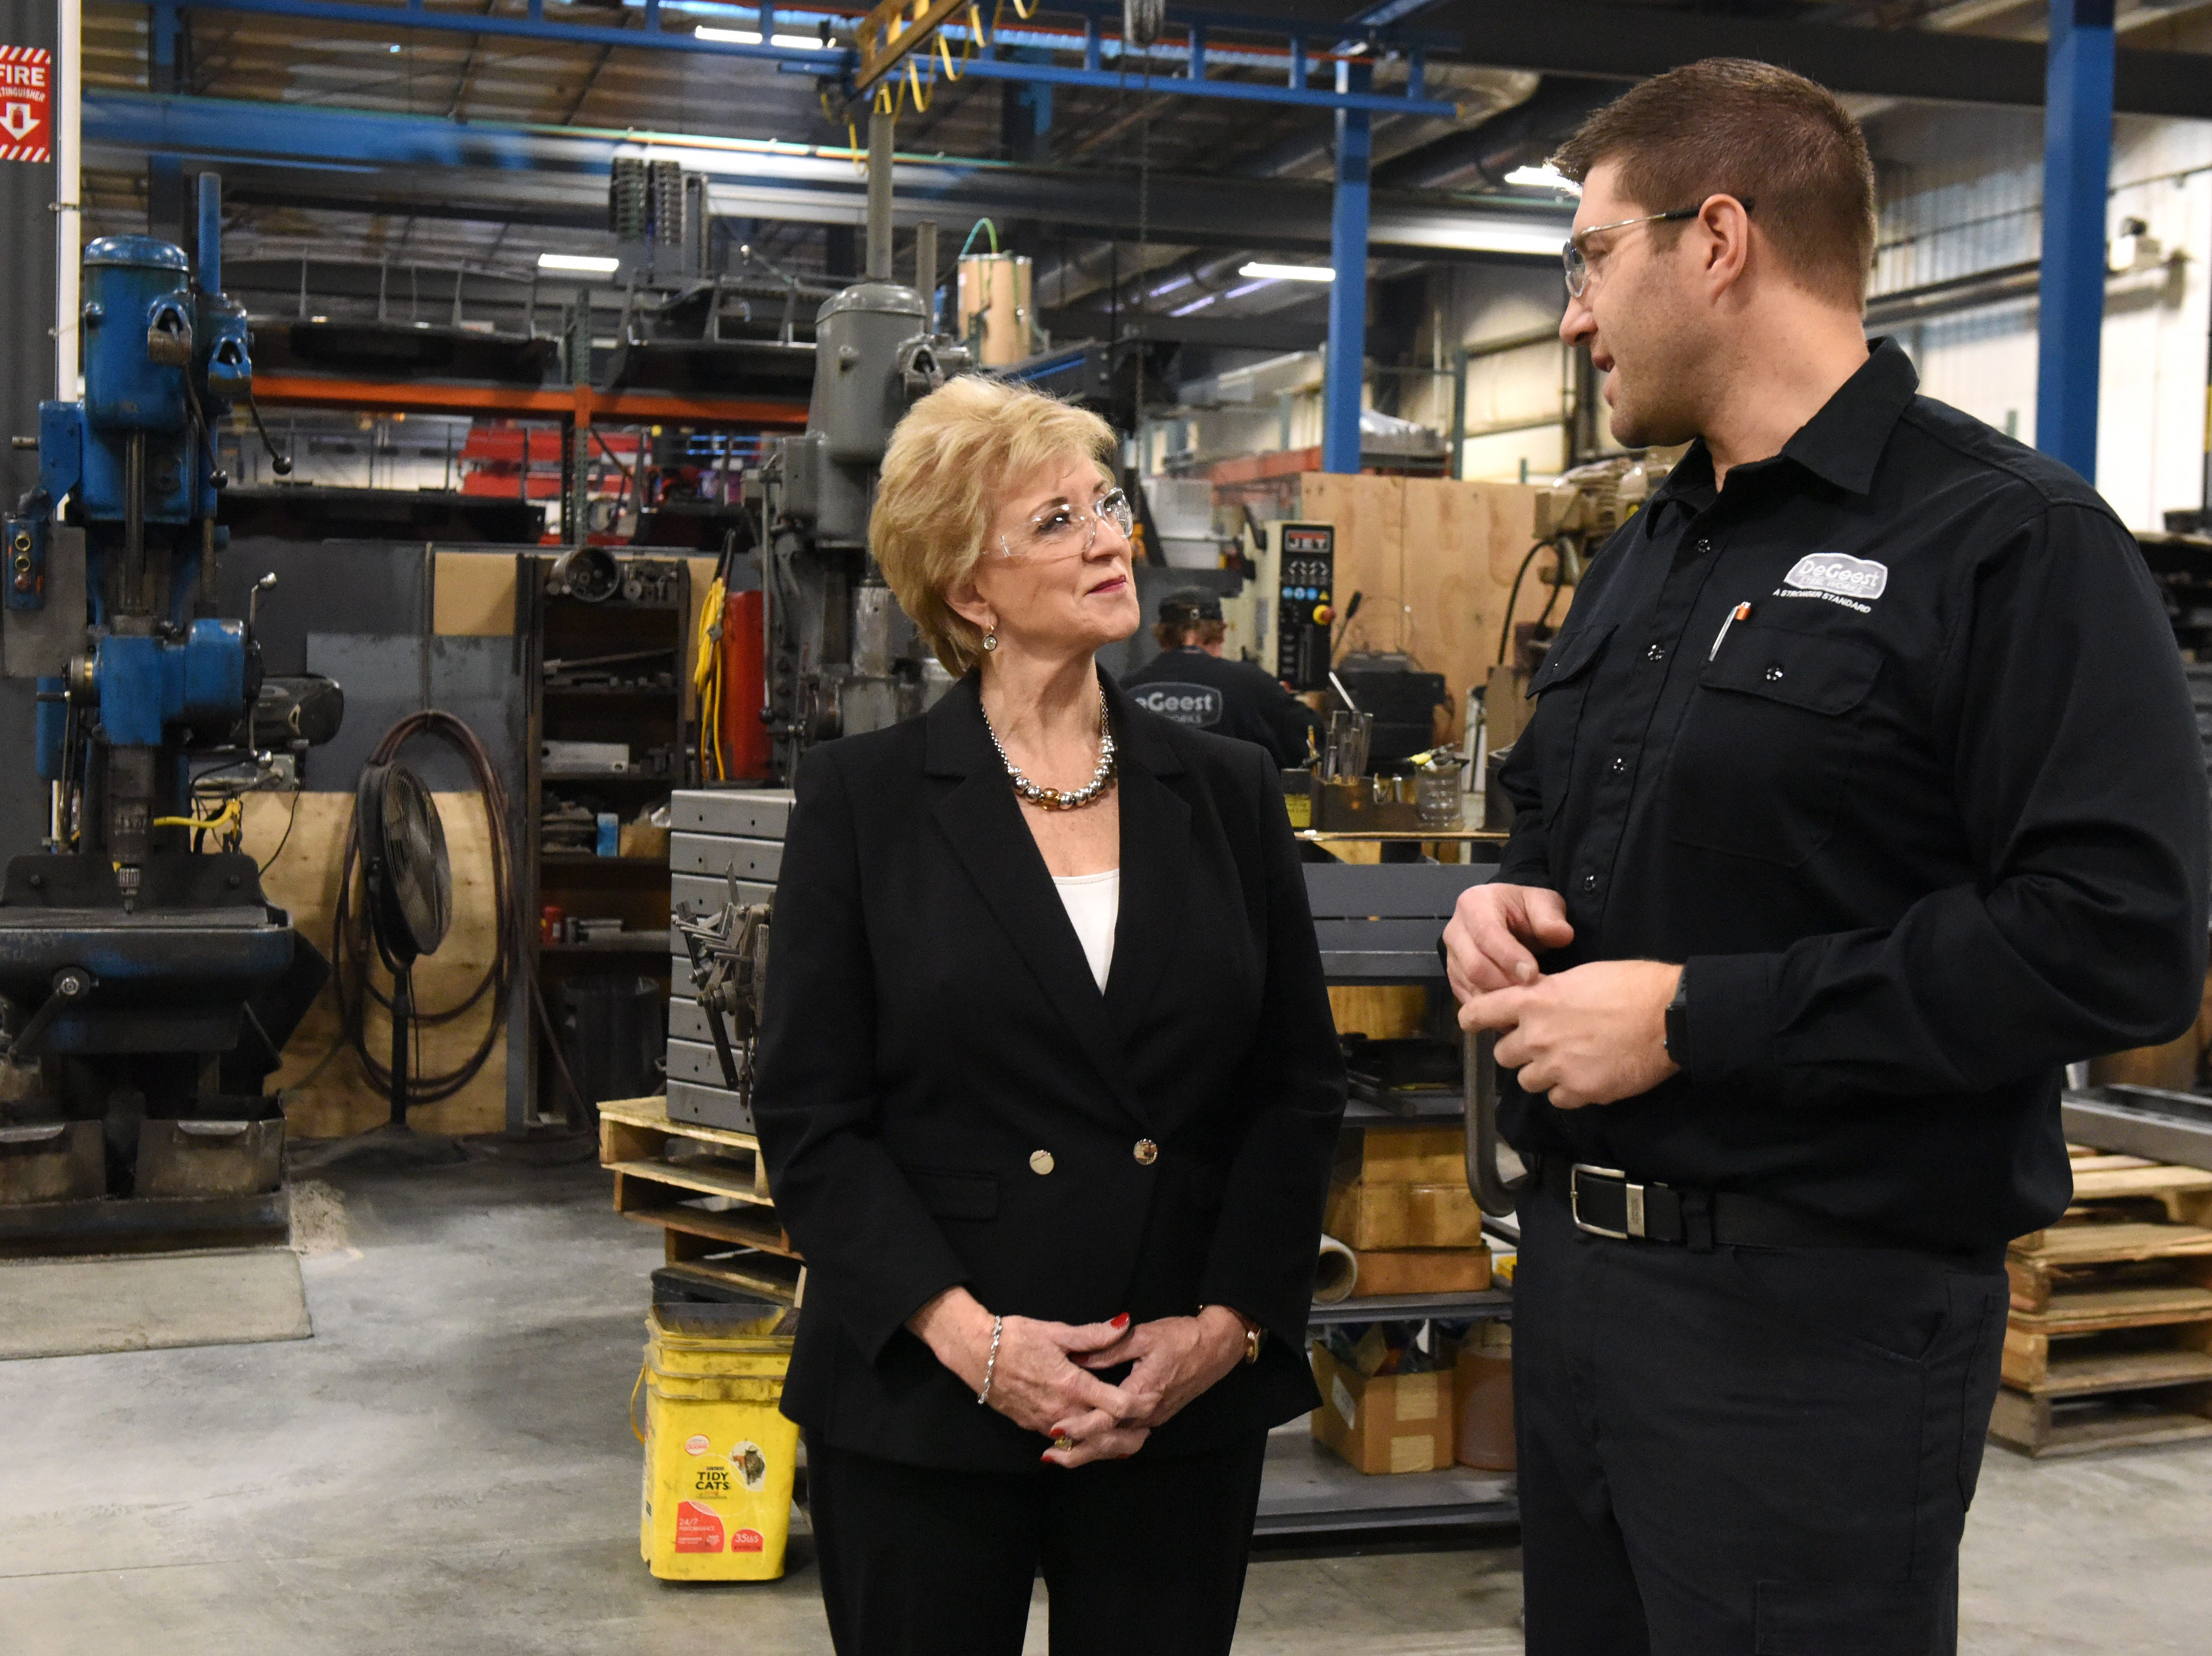 Linda McMahon, head of the U.S. Small Business Administration, gets a tour from Derek DeGeest at DeGeest Steel Works in Tea, S.D., Thursday, Nov. 29, 2018.